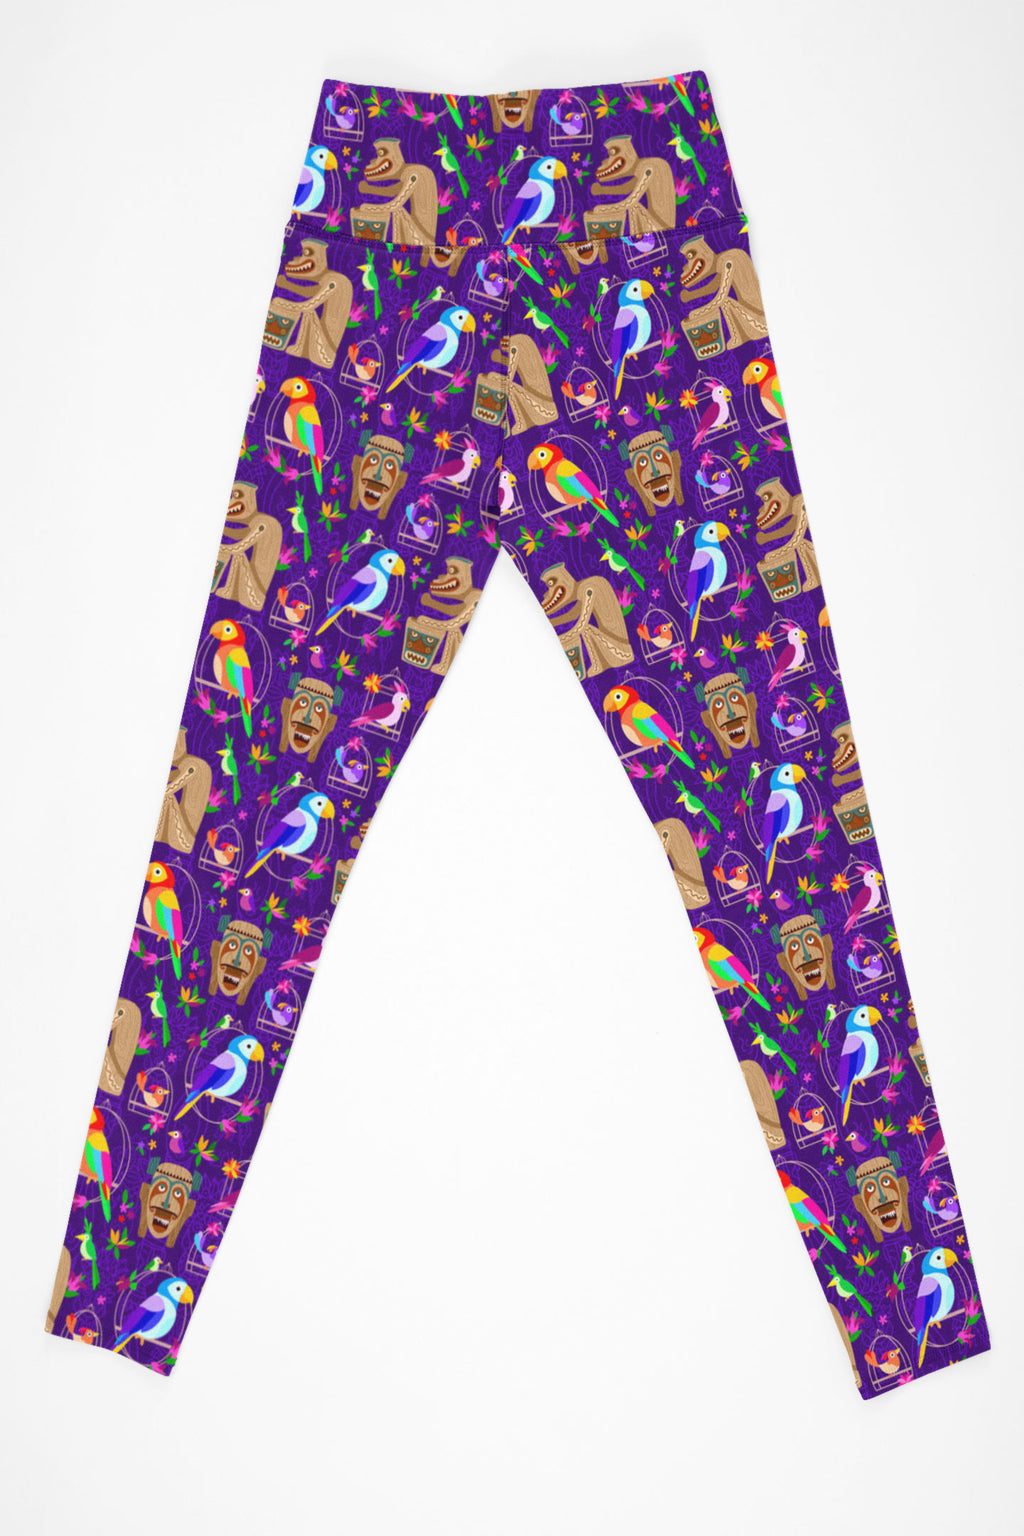 Tiki Plays The Drums Leggings With Pockets - Women's - PRESALE